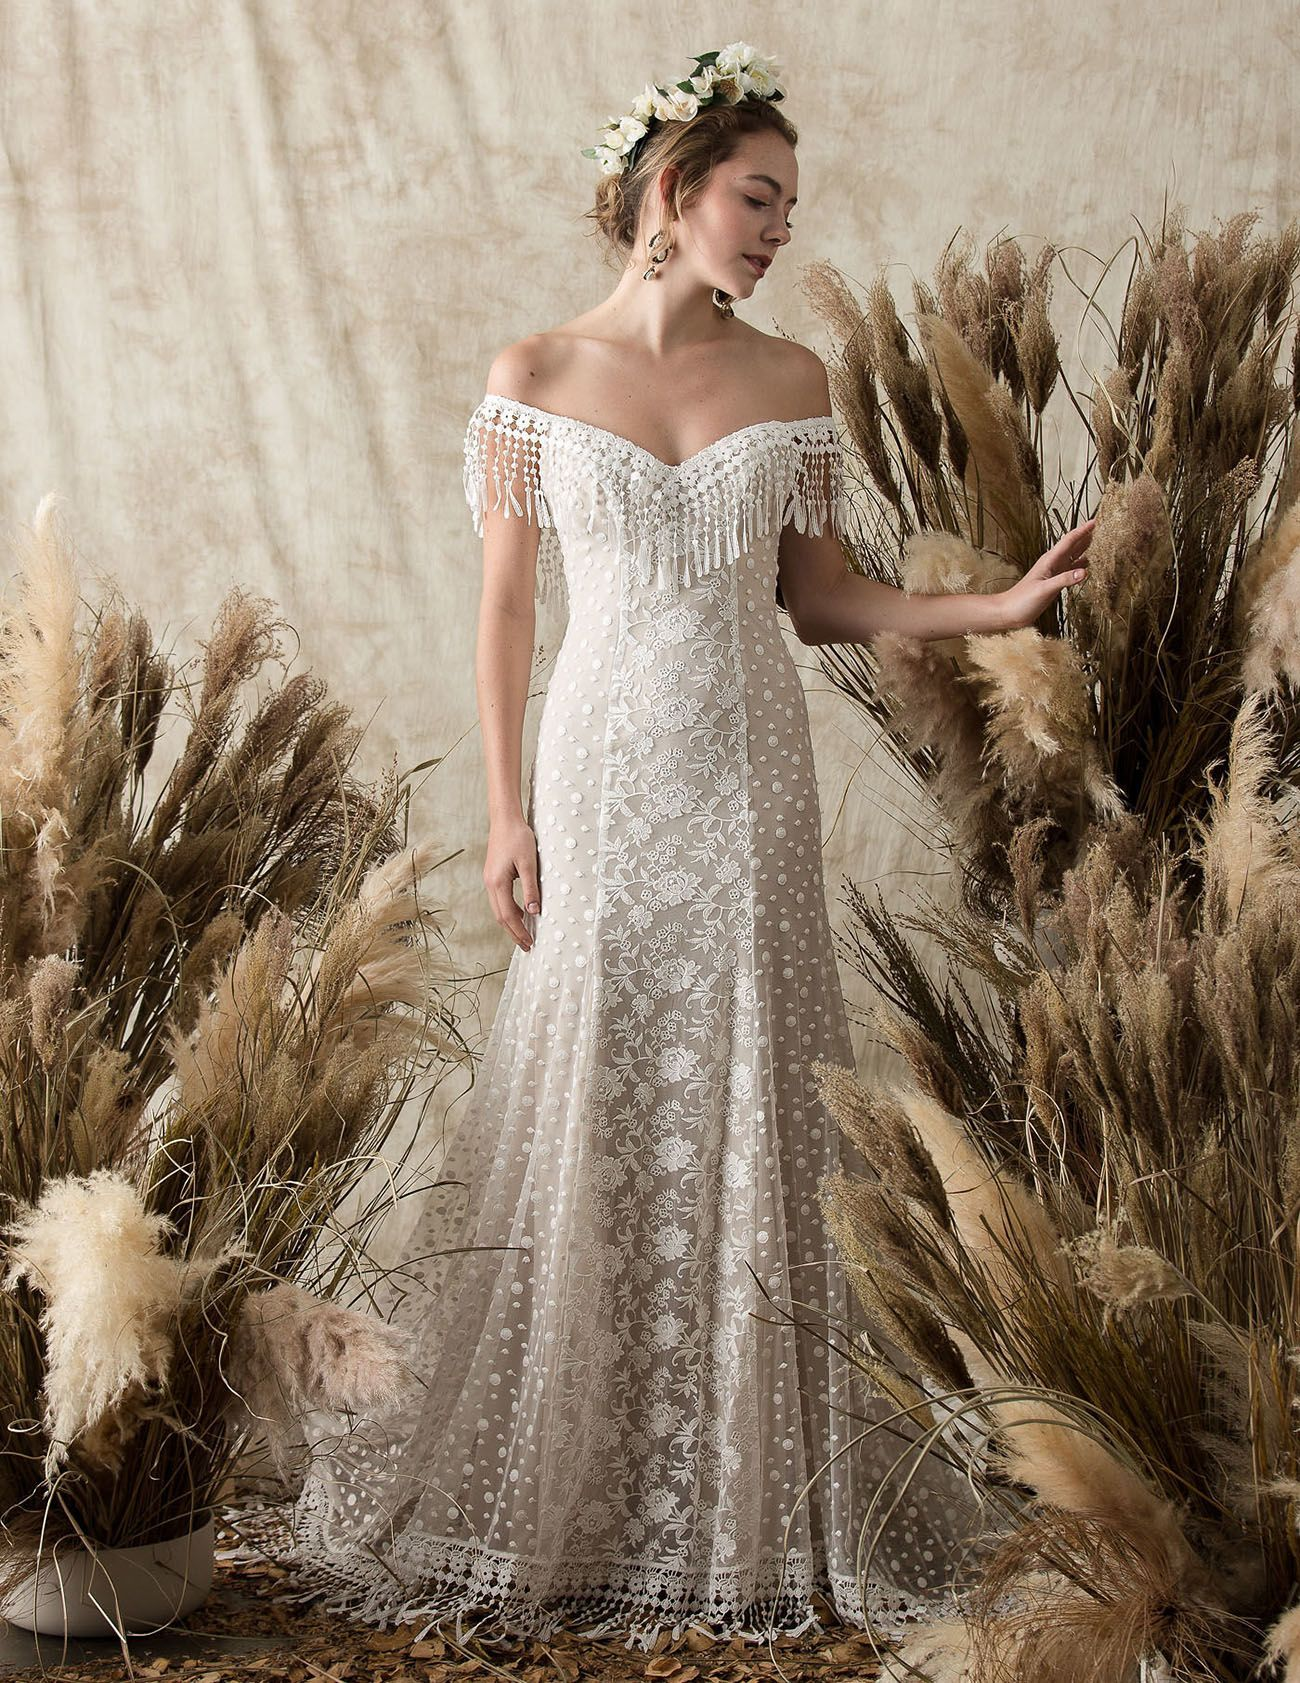 Dreamers and lovers boho lace wedding dress with sweetheart neckline